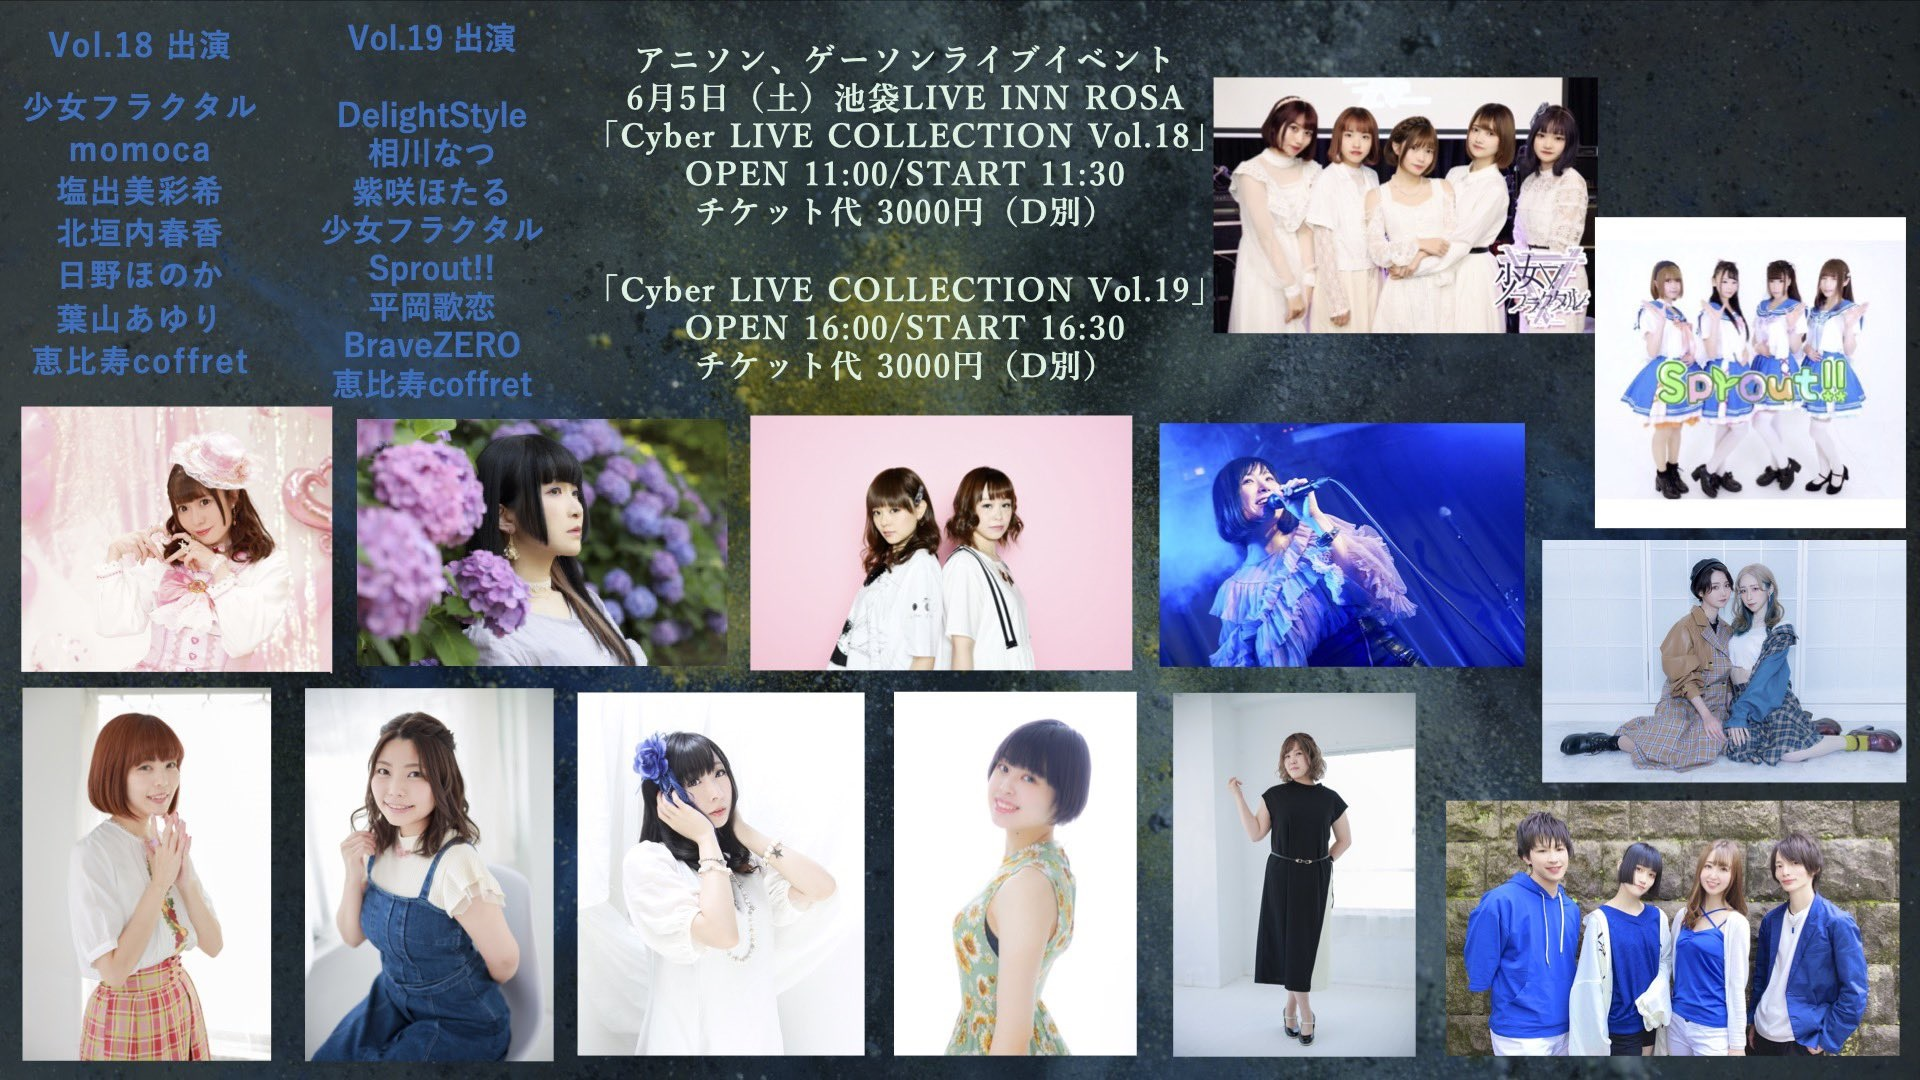 Cyber LIVE COLLECTION Vol.19